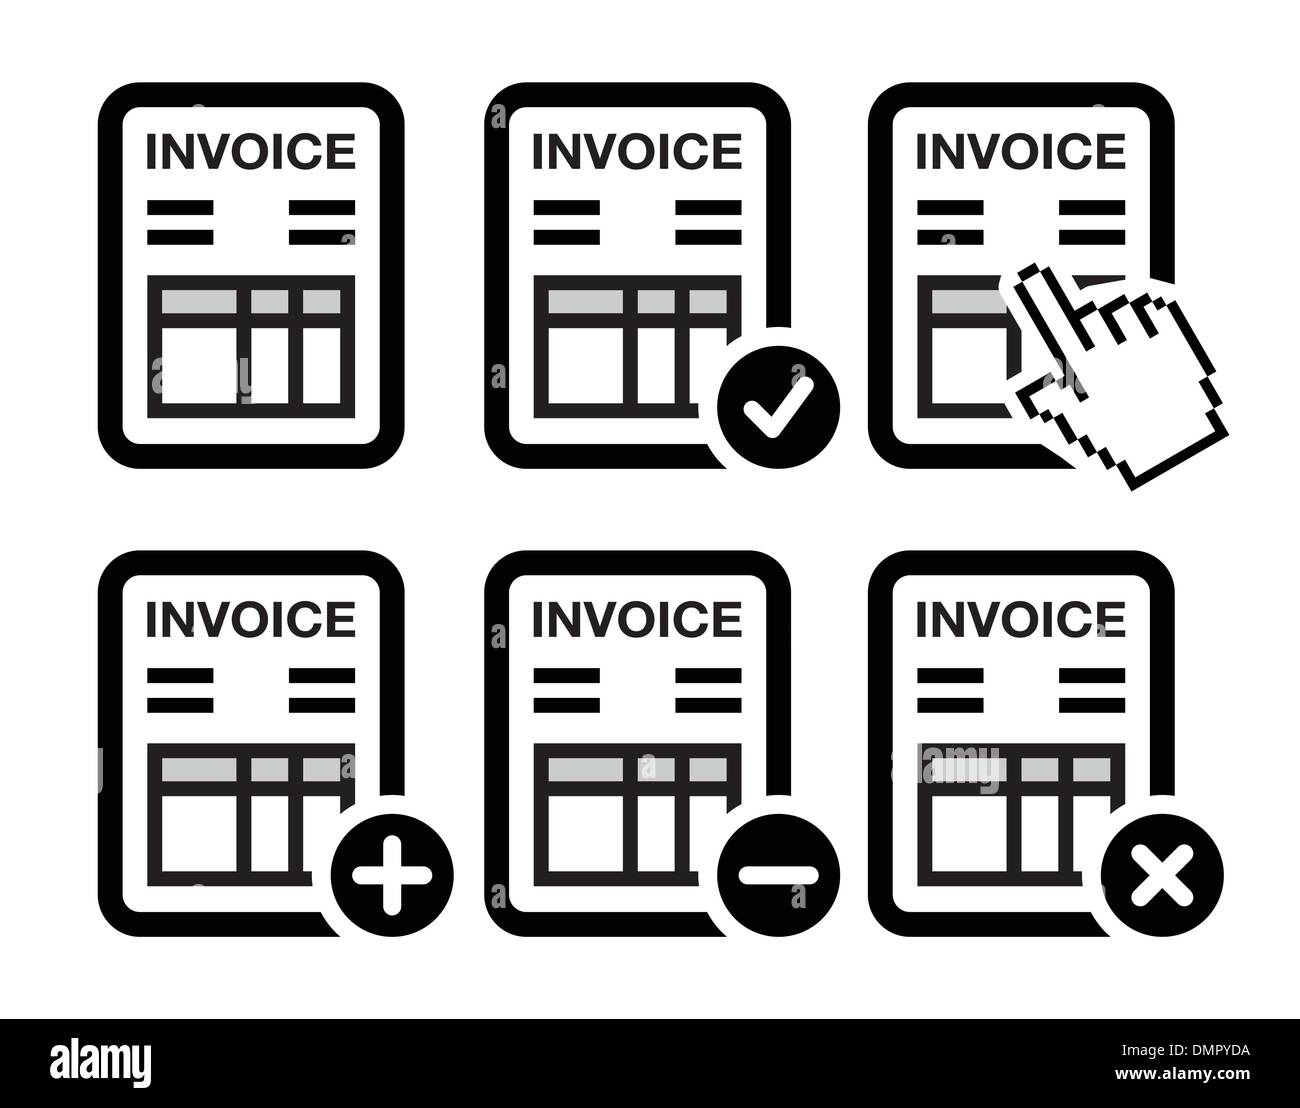 Invoice, finance vector icons set - Stock Vector